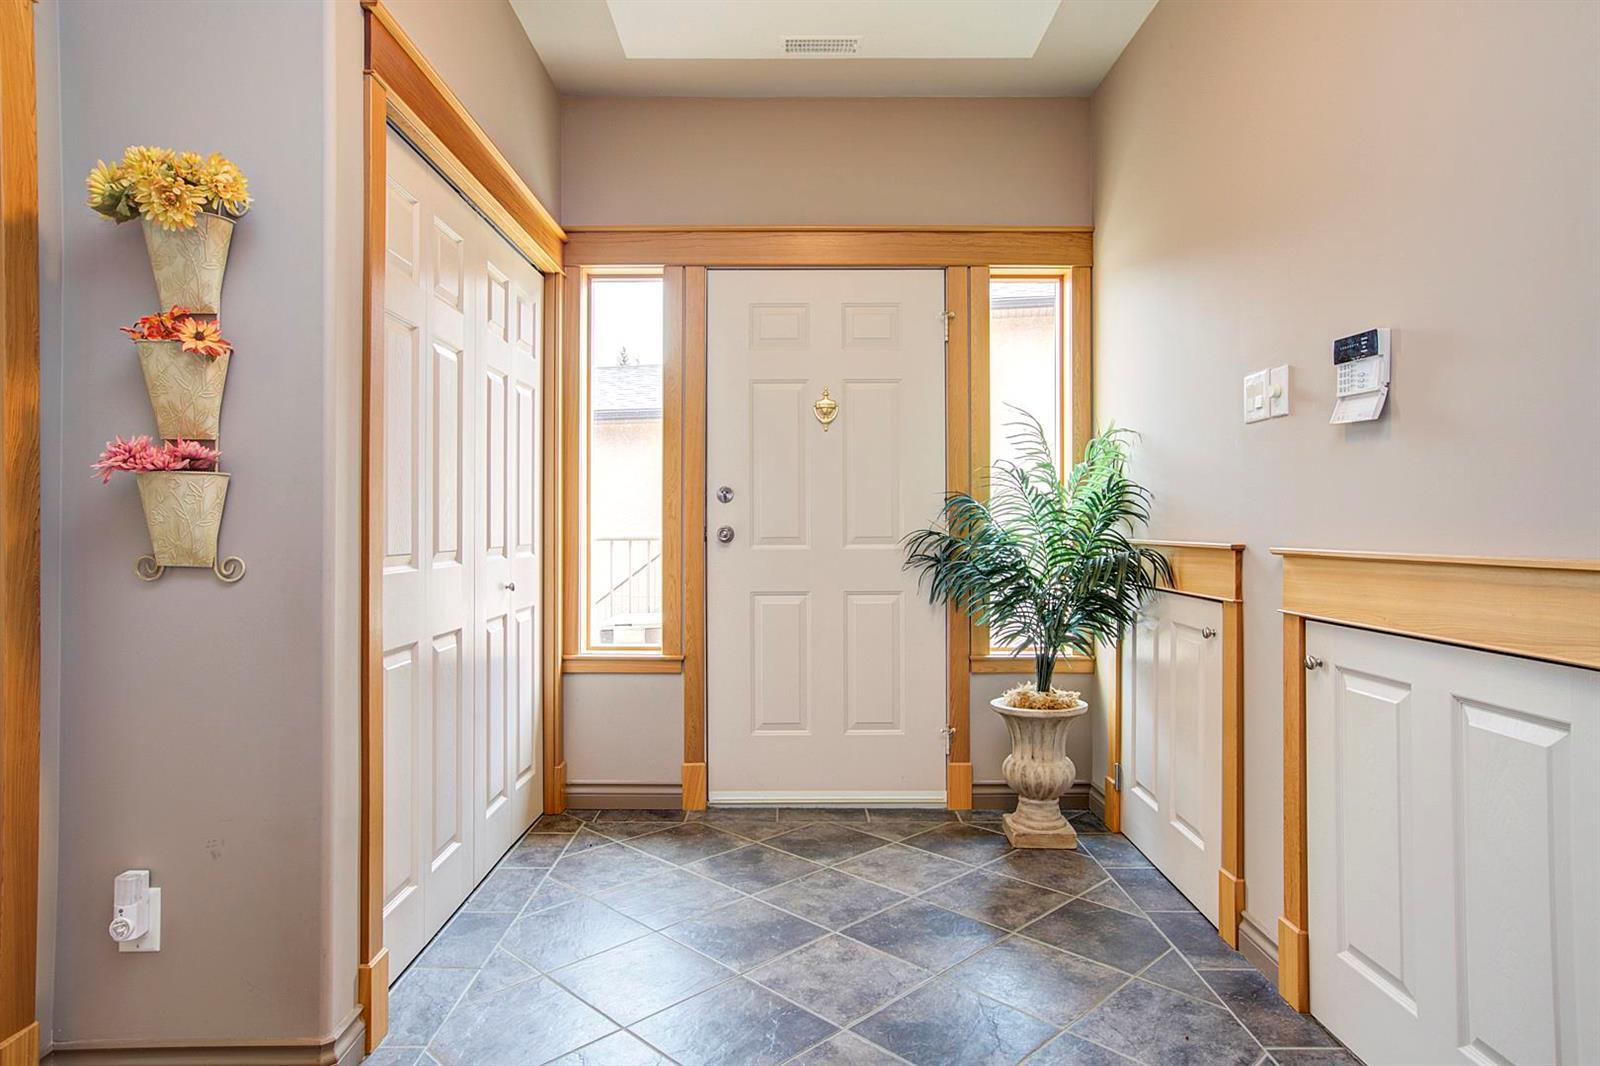 #203 3473 Lakeview Place,, Enderby, British Columbia  V0E 1V5 - Photo 10 - 10229003